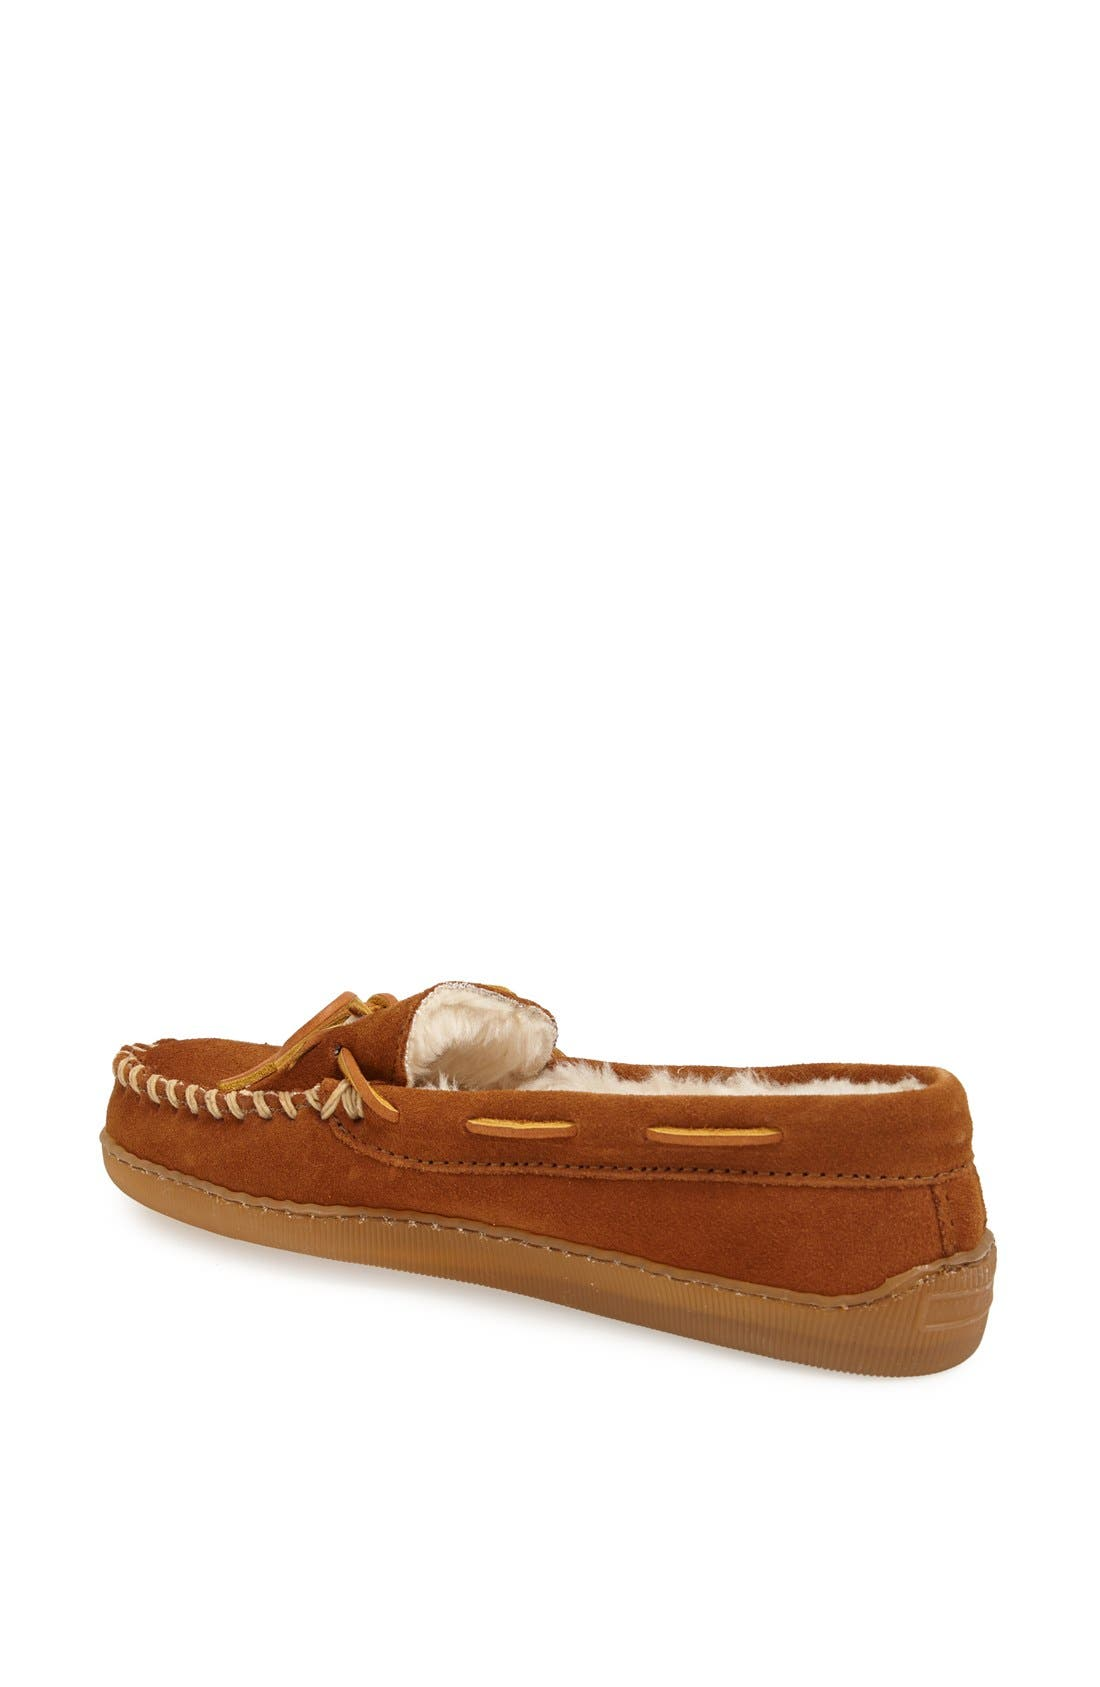 Moccasin Slipper,                             Alternate thumbnail 3, color,                             BROWN